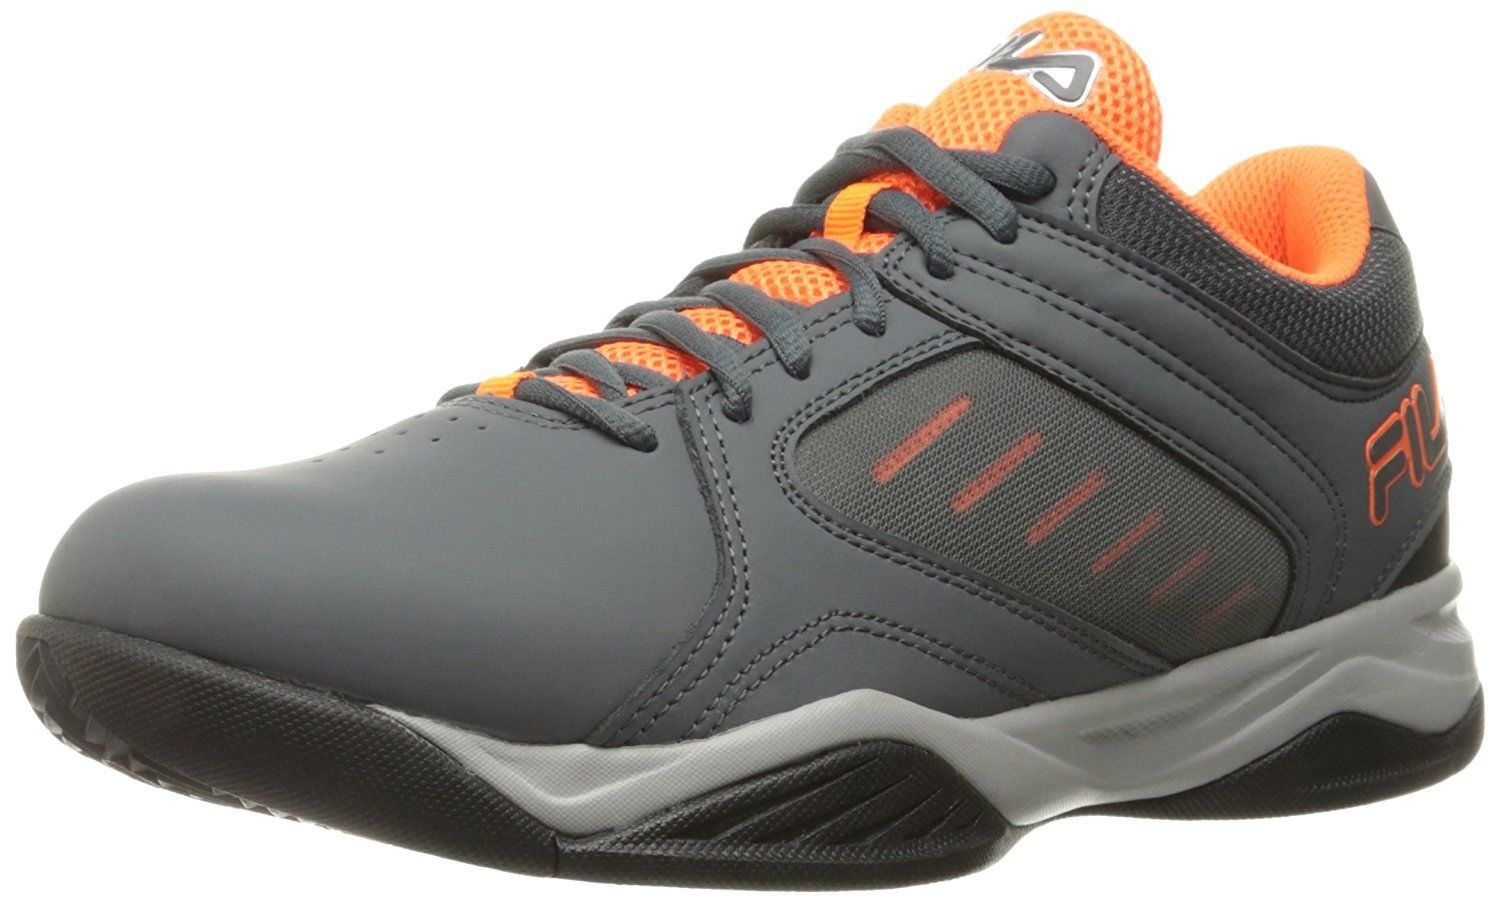 Fila BANK Mens Grey Orange Low Top Athletic Basketball Sneakers Shoes by